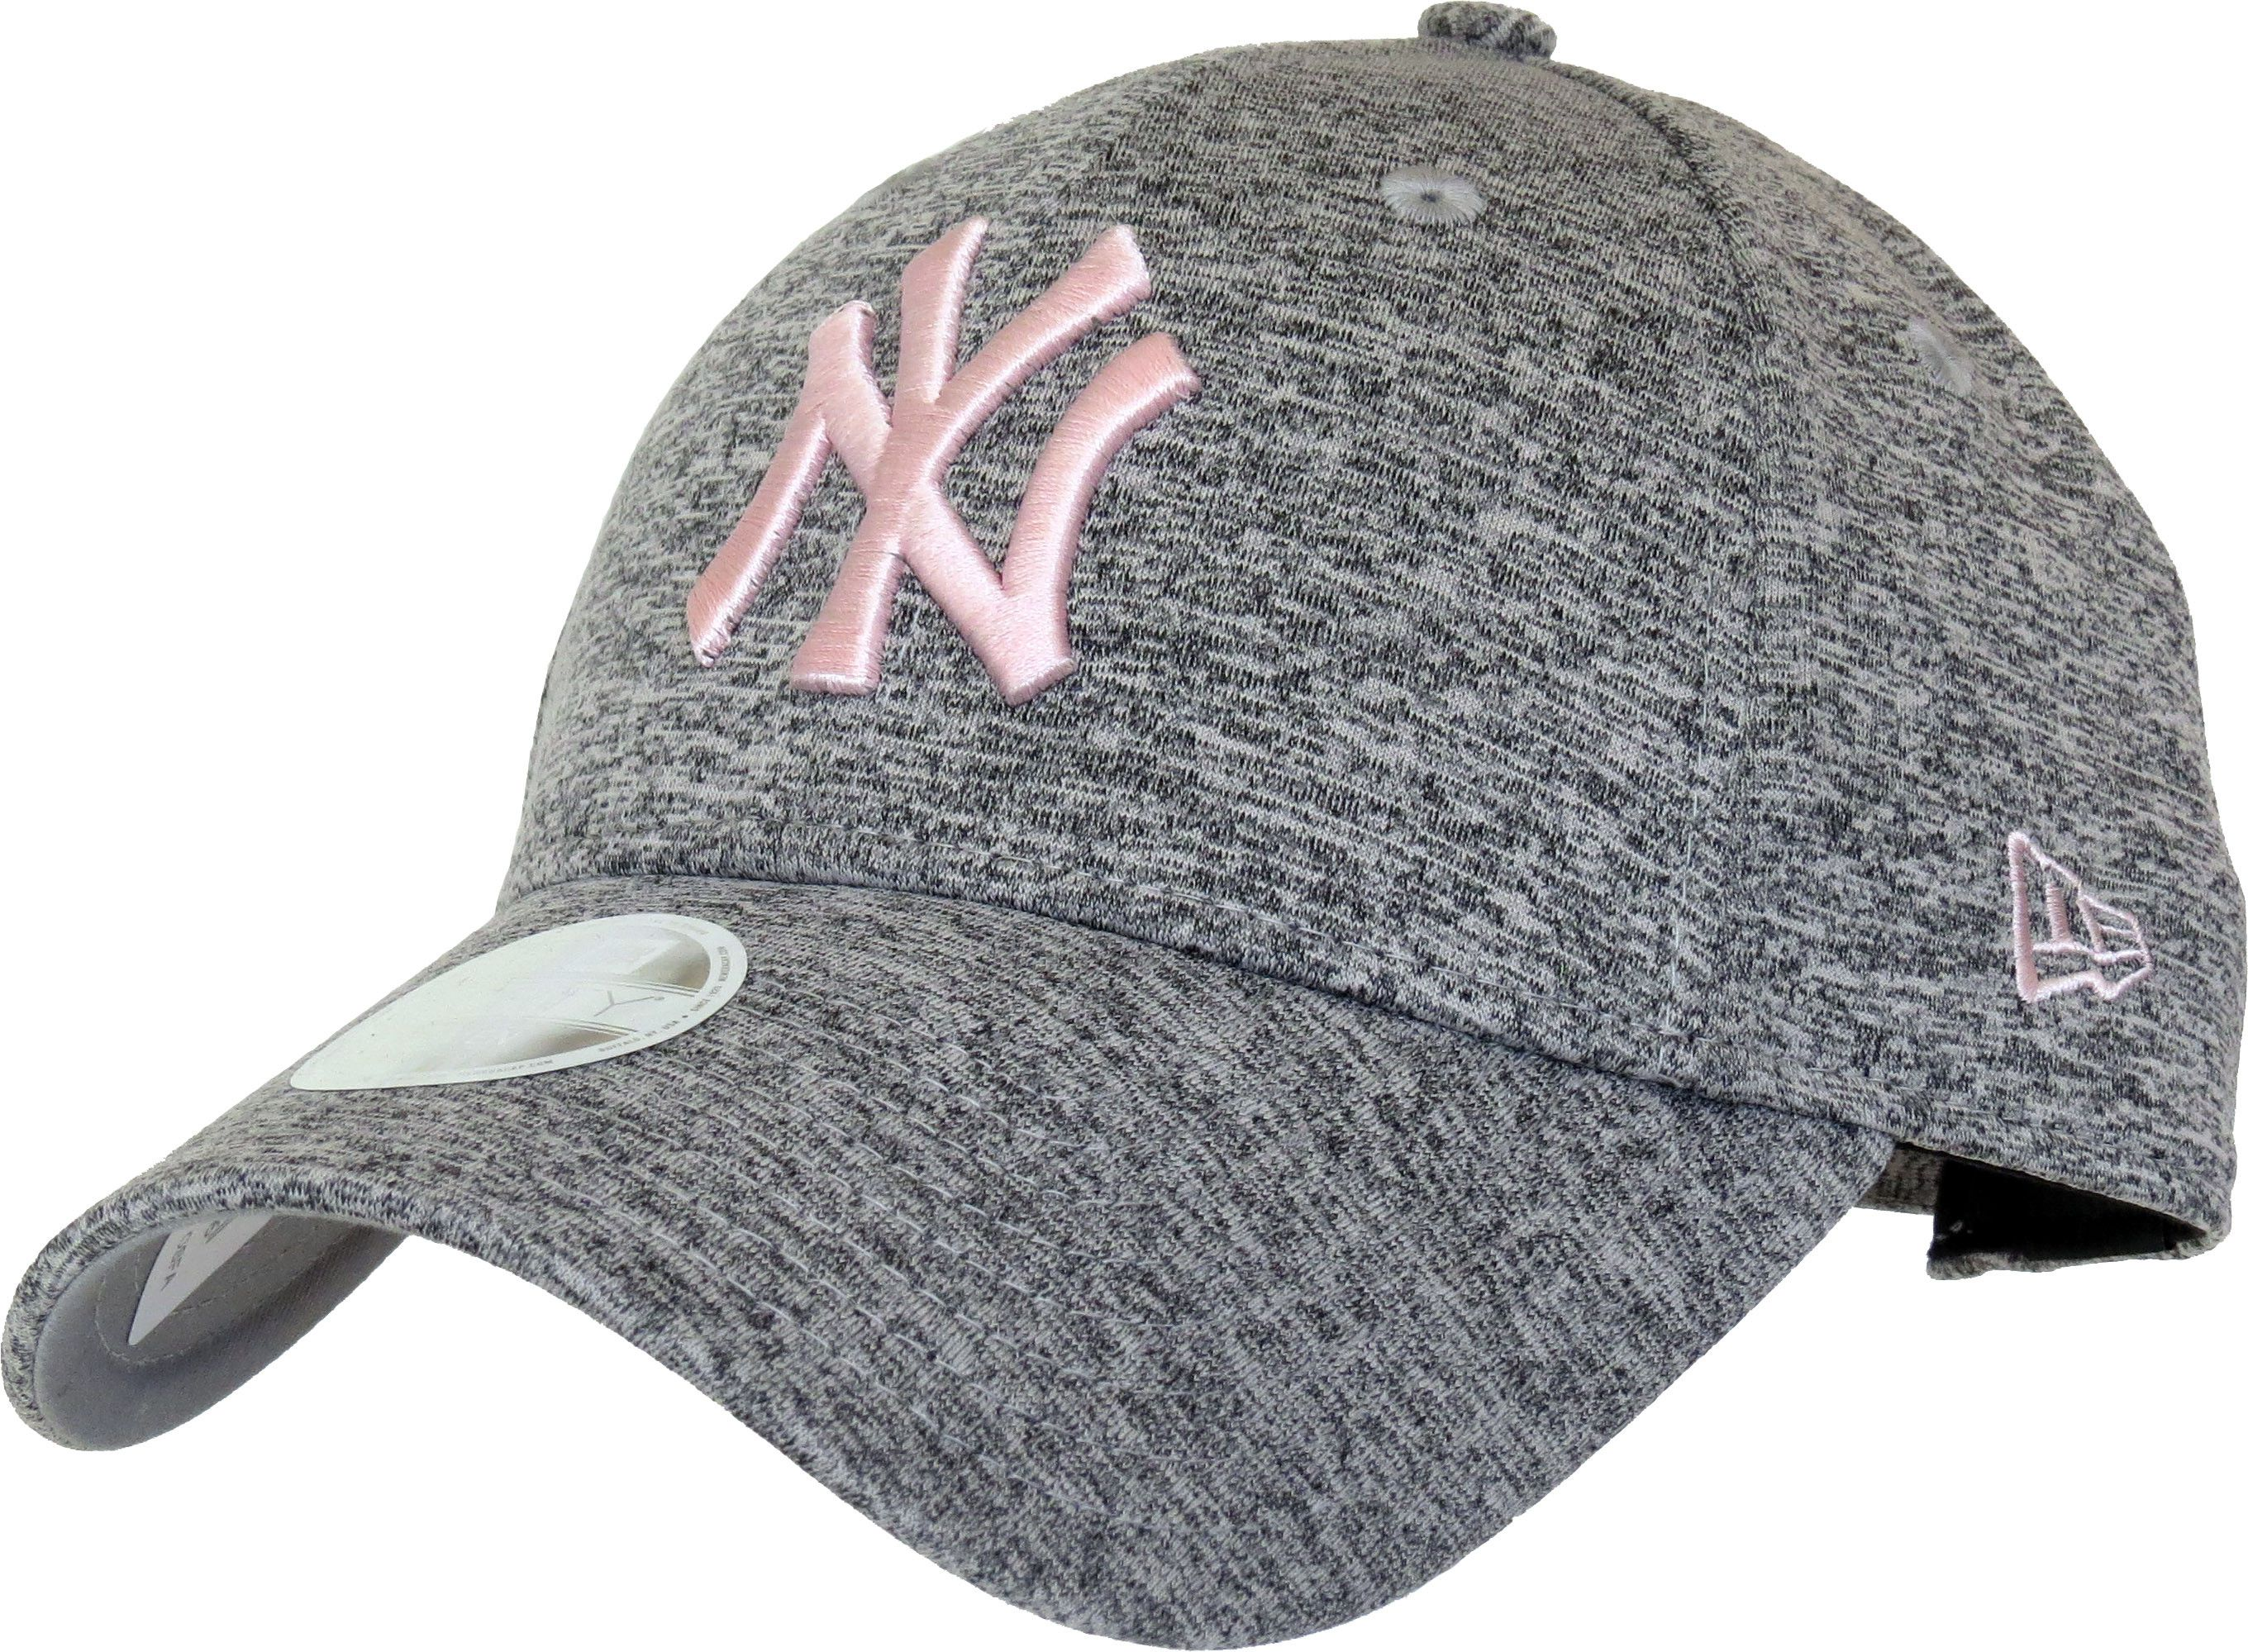 46310ad1d831f New Era 9Forty Womens Tech Jersey Baseball Cap. Jersey Grey